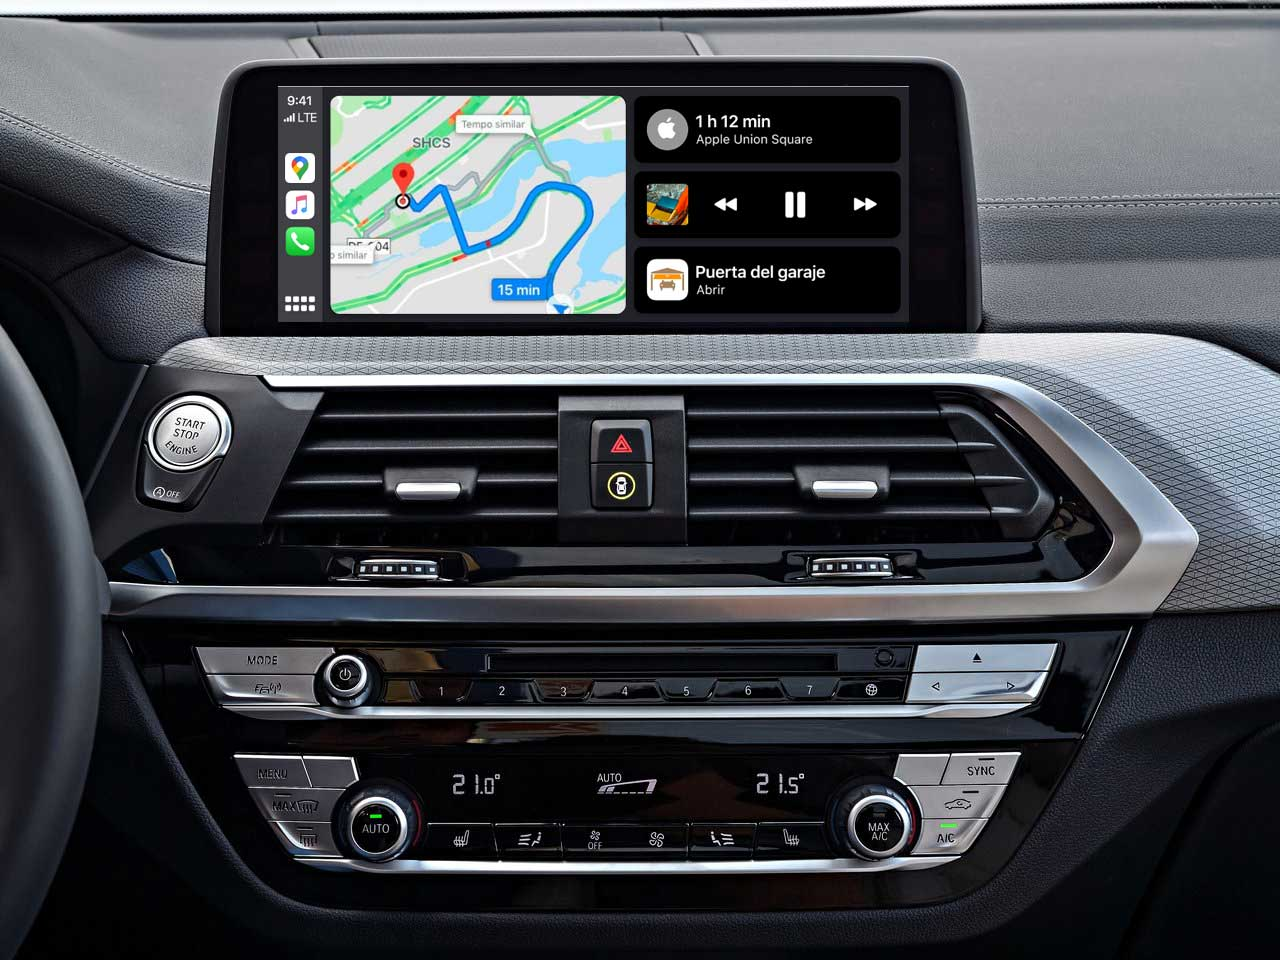 Llega el primer GPS compatible con el Dashboard de CarPlay, y no es ni Google Maps ni Waze